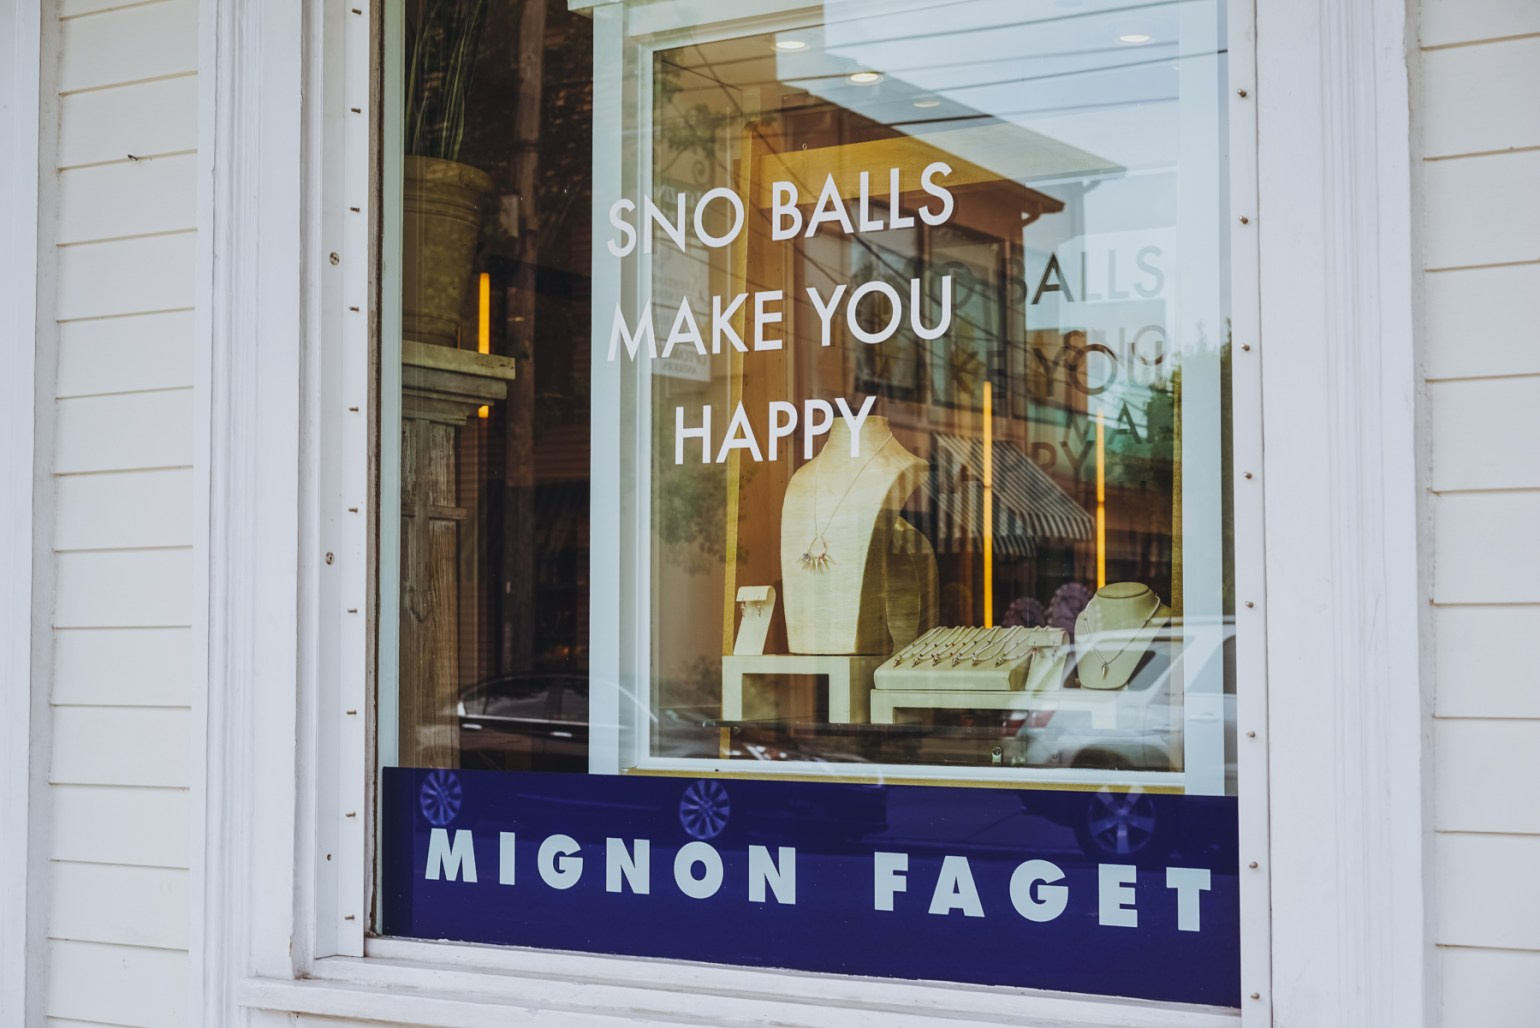 Longtime Magazine Street retailer Mignon Faget (3801 Magazine St.) designs and sells Louisiana inspired jewelry and gifts for the home from their Magazine Street outpost, along with their headquarters and jewelry manufacturing happening a few blocks down nearby Casamento's Oyster Bar (4330 Magazine St.)